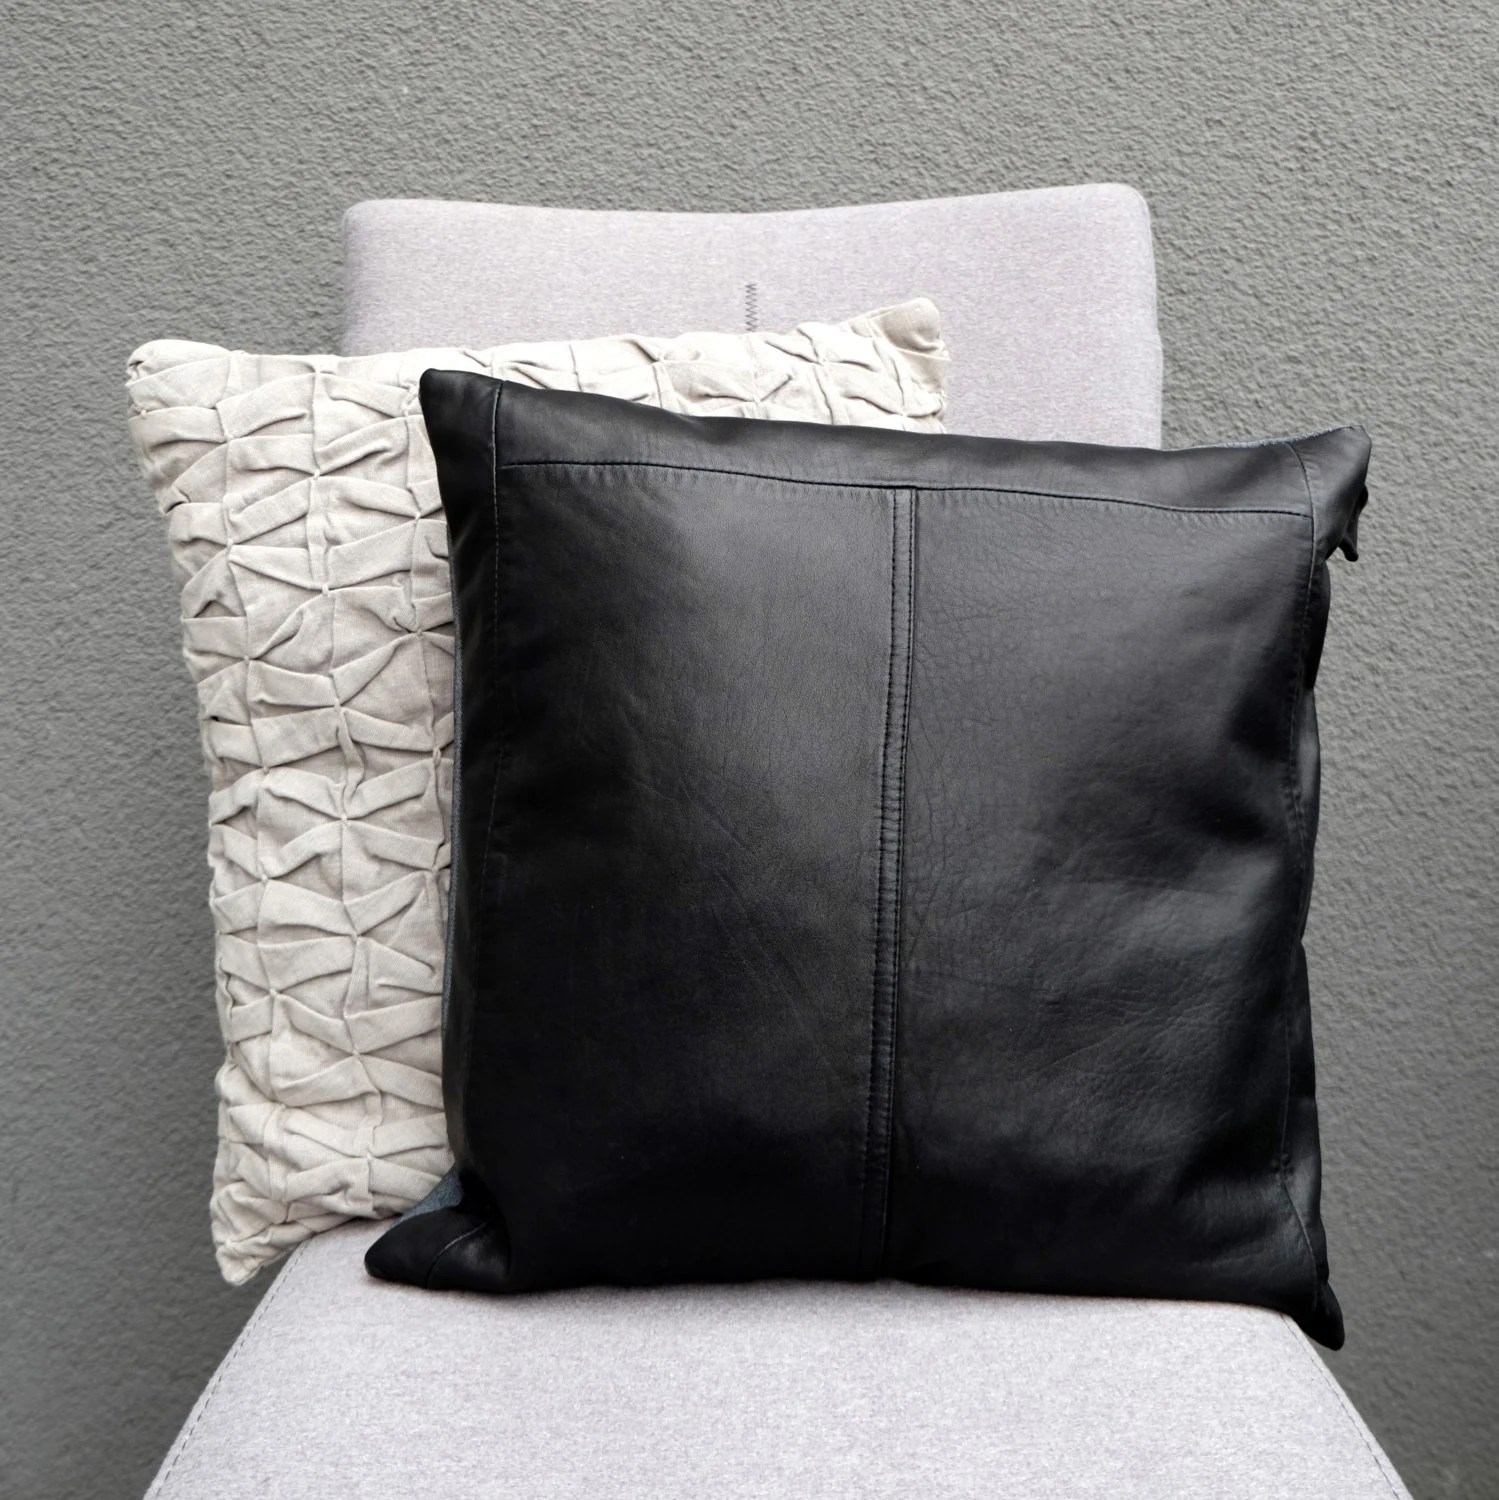 Black leather pillow Luxurious pillow case Pillow cover